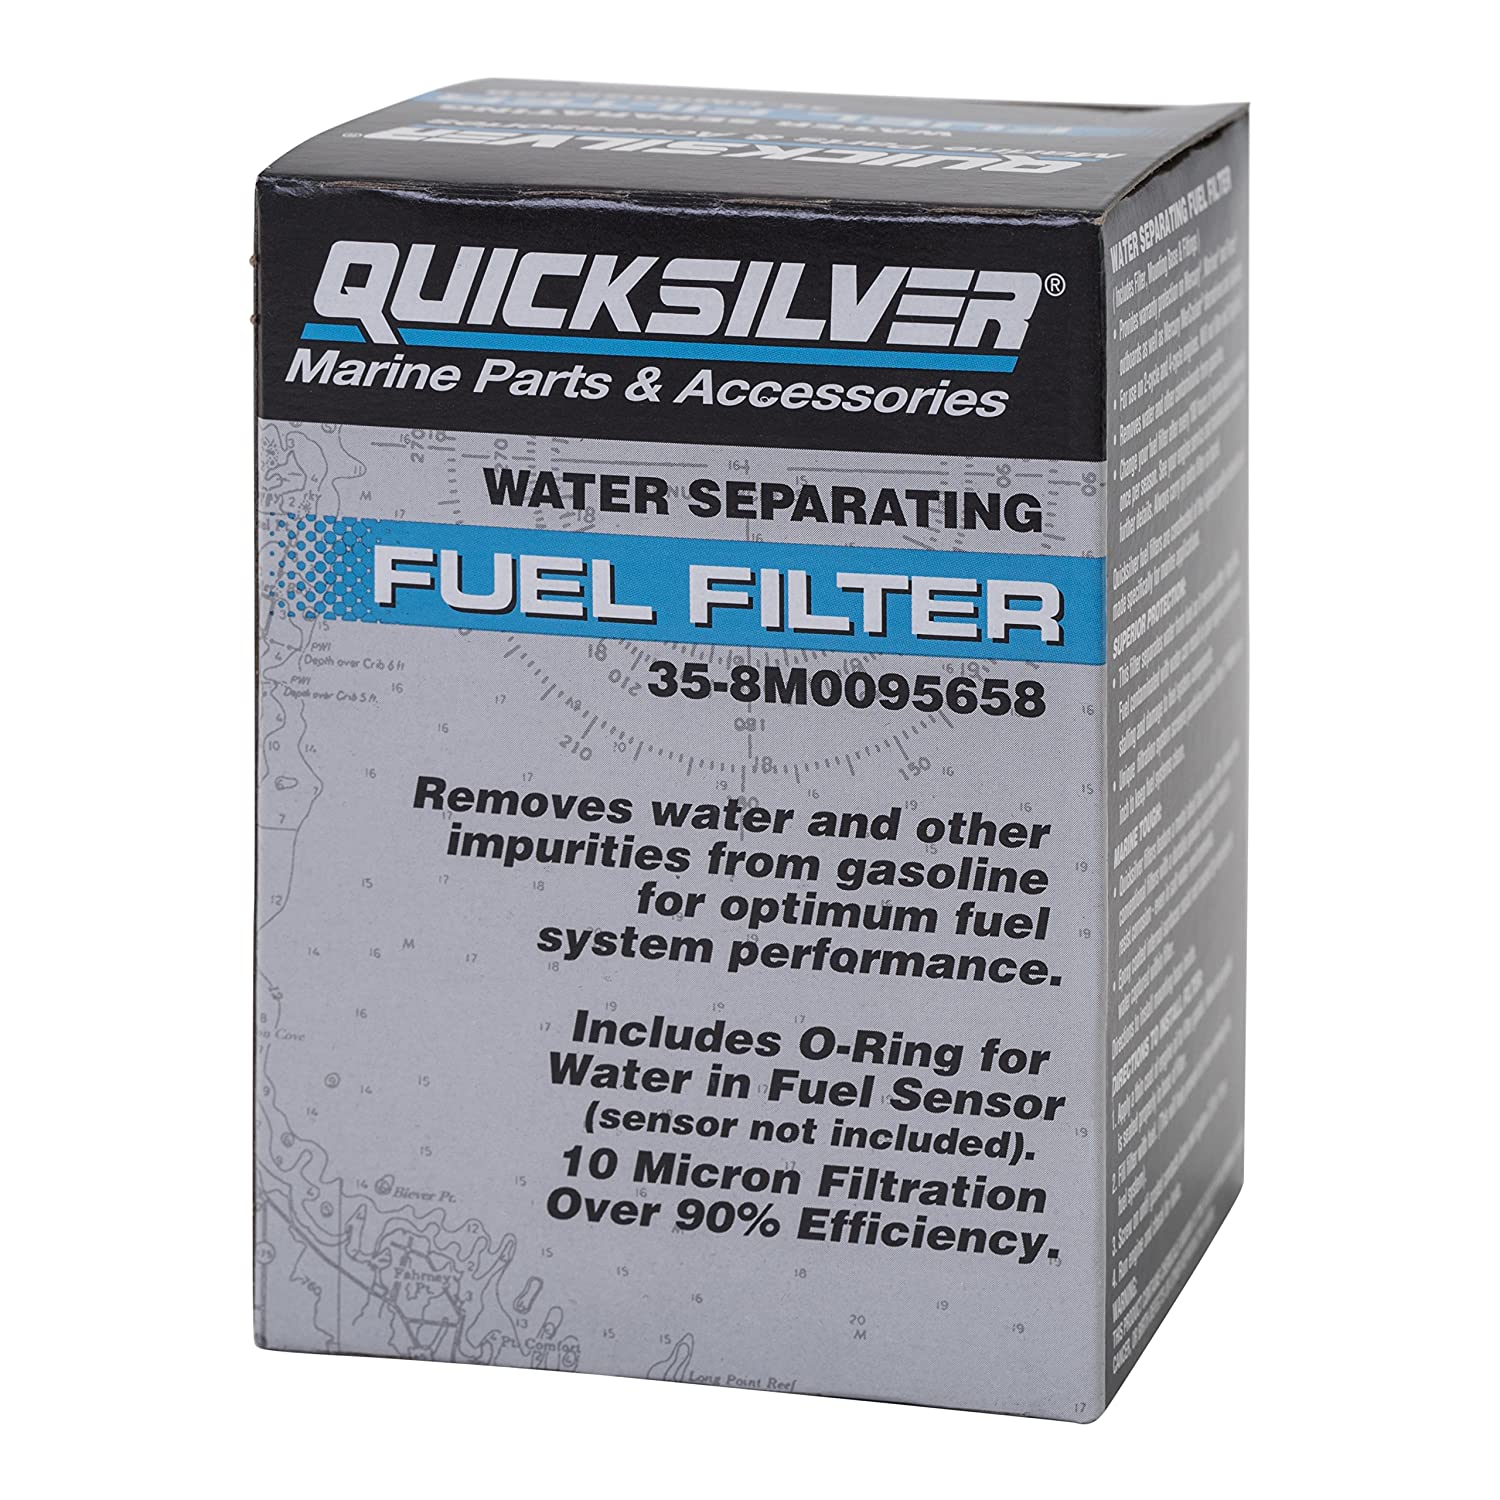 Amazon.com : QuickSilver 8M0095658 Water Separating Fuel Filter Kit -  Verado V-6 Outboards : Sports & Outdoors